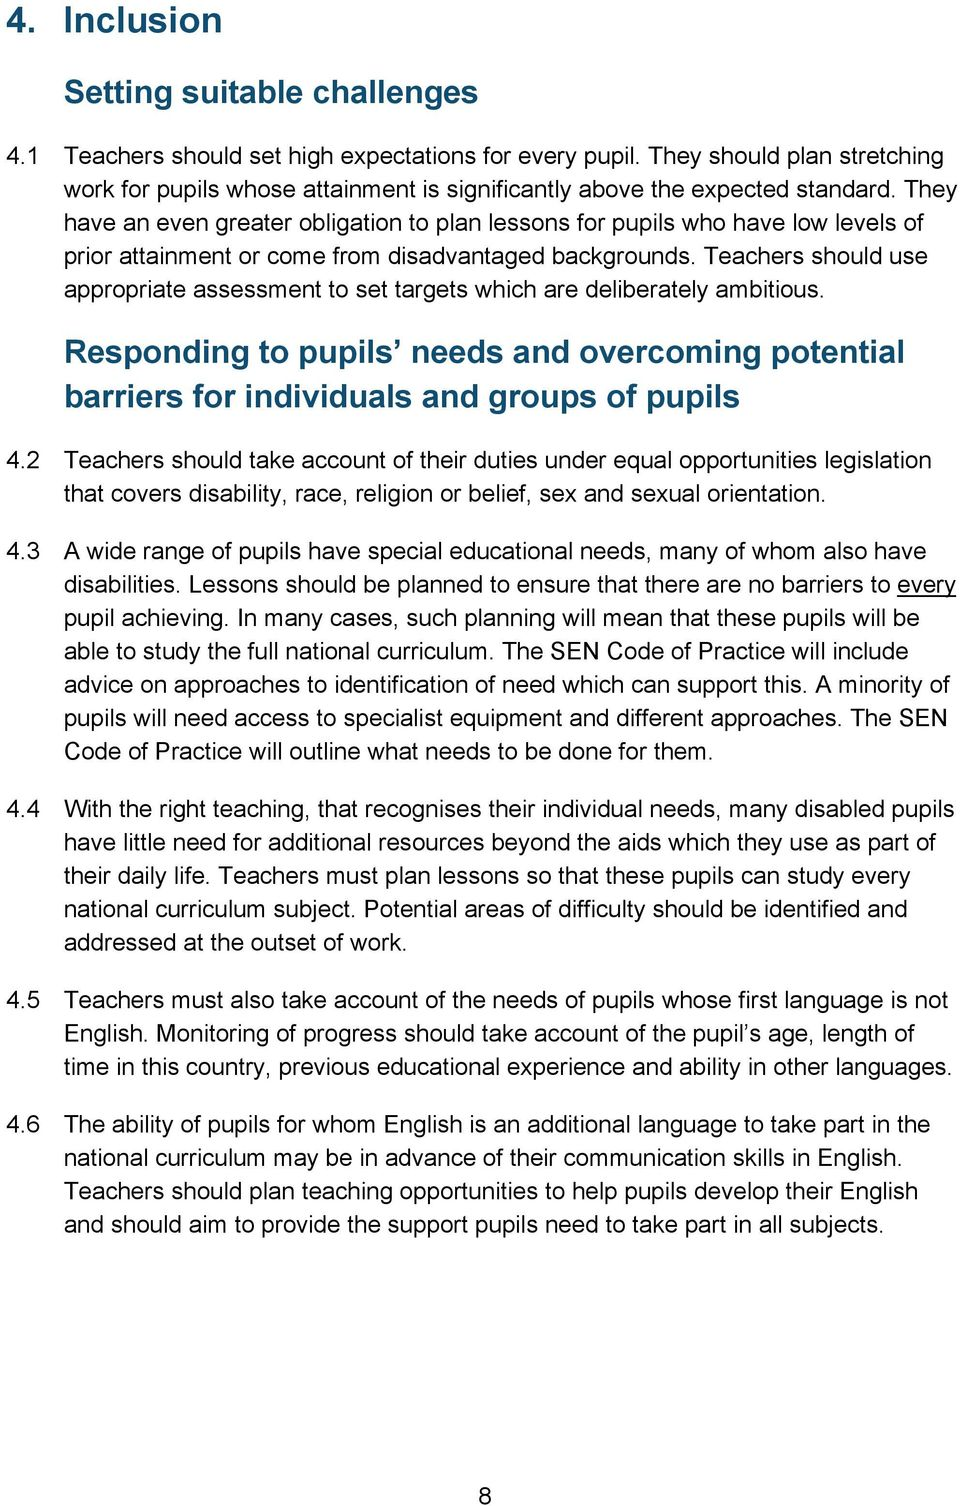 They have an even greater obligation to plan lessons for pupils who have low levels of prior attainment or come from disadvantaged backgrounds.